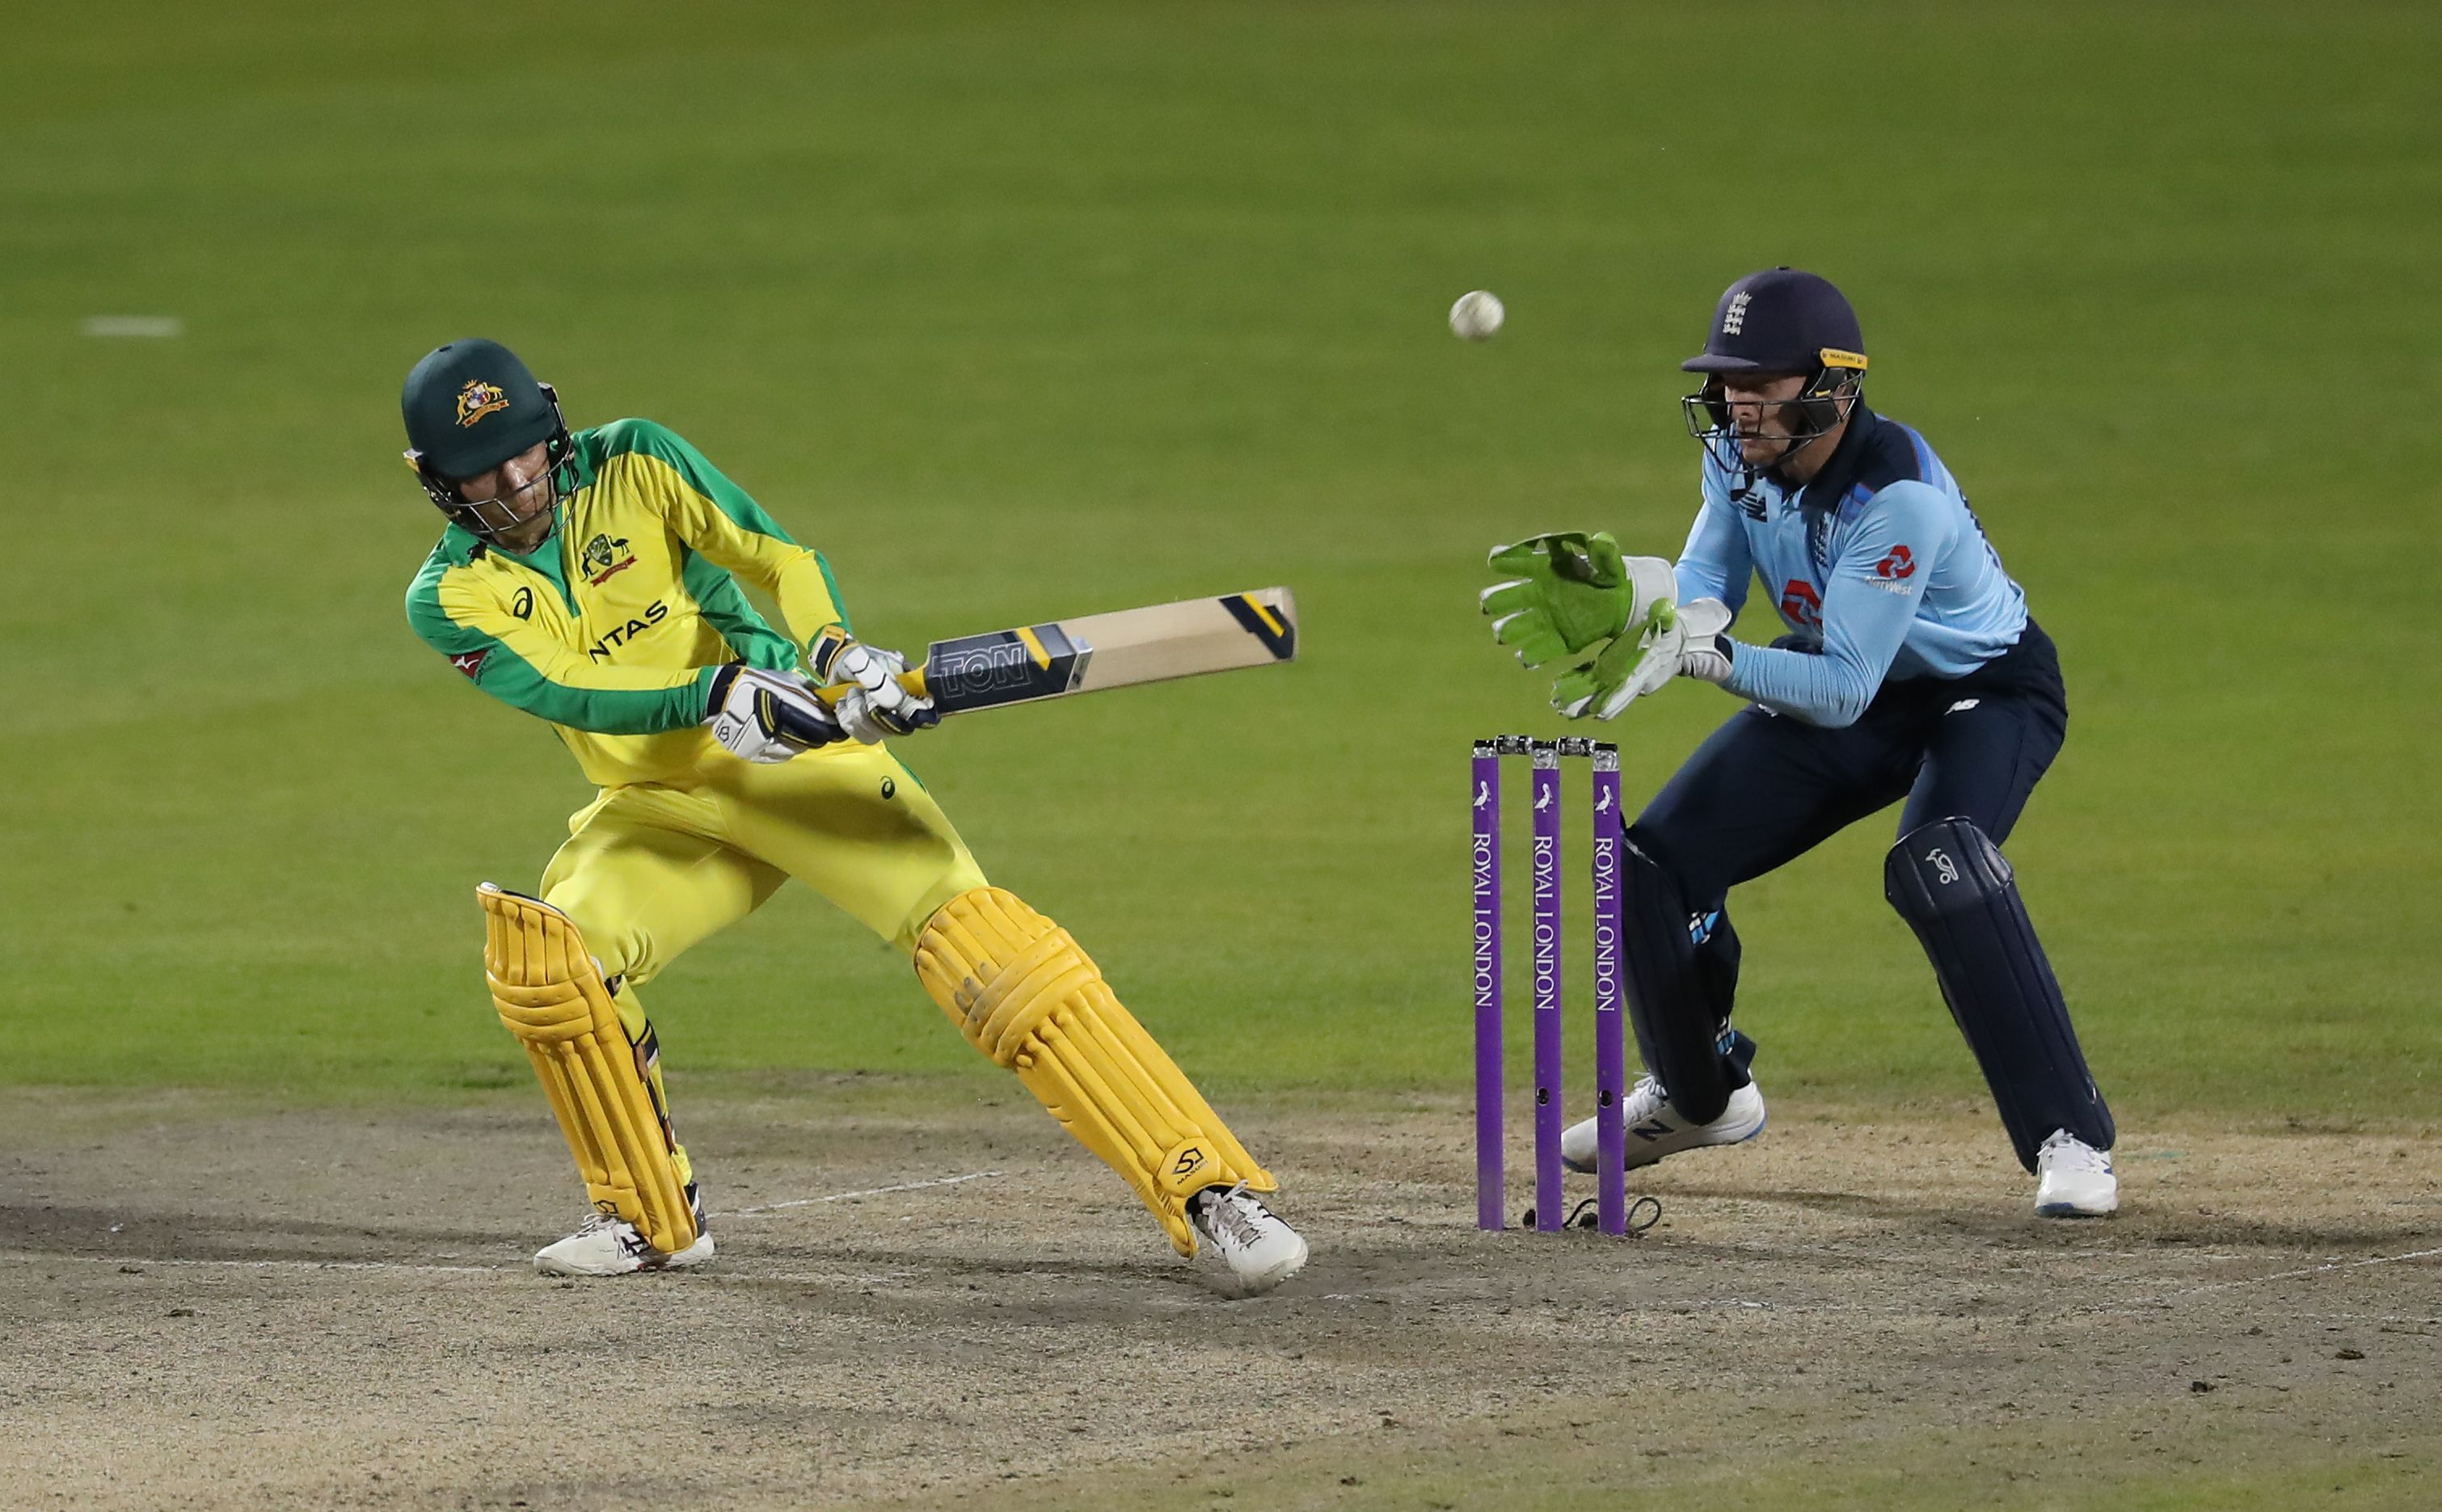 Australia's Alex Carey in action. Photo: Reuters